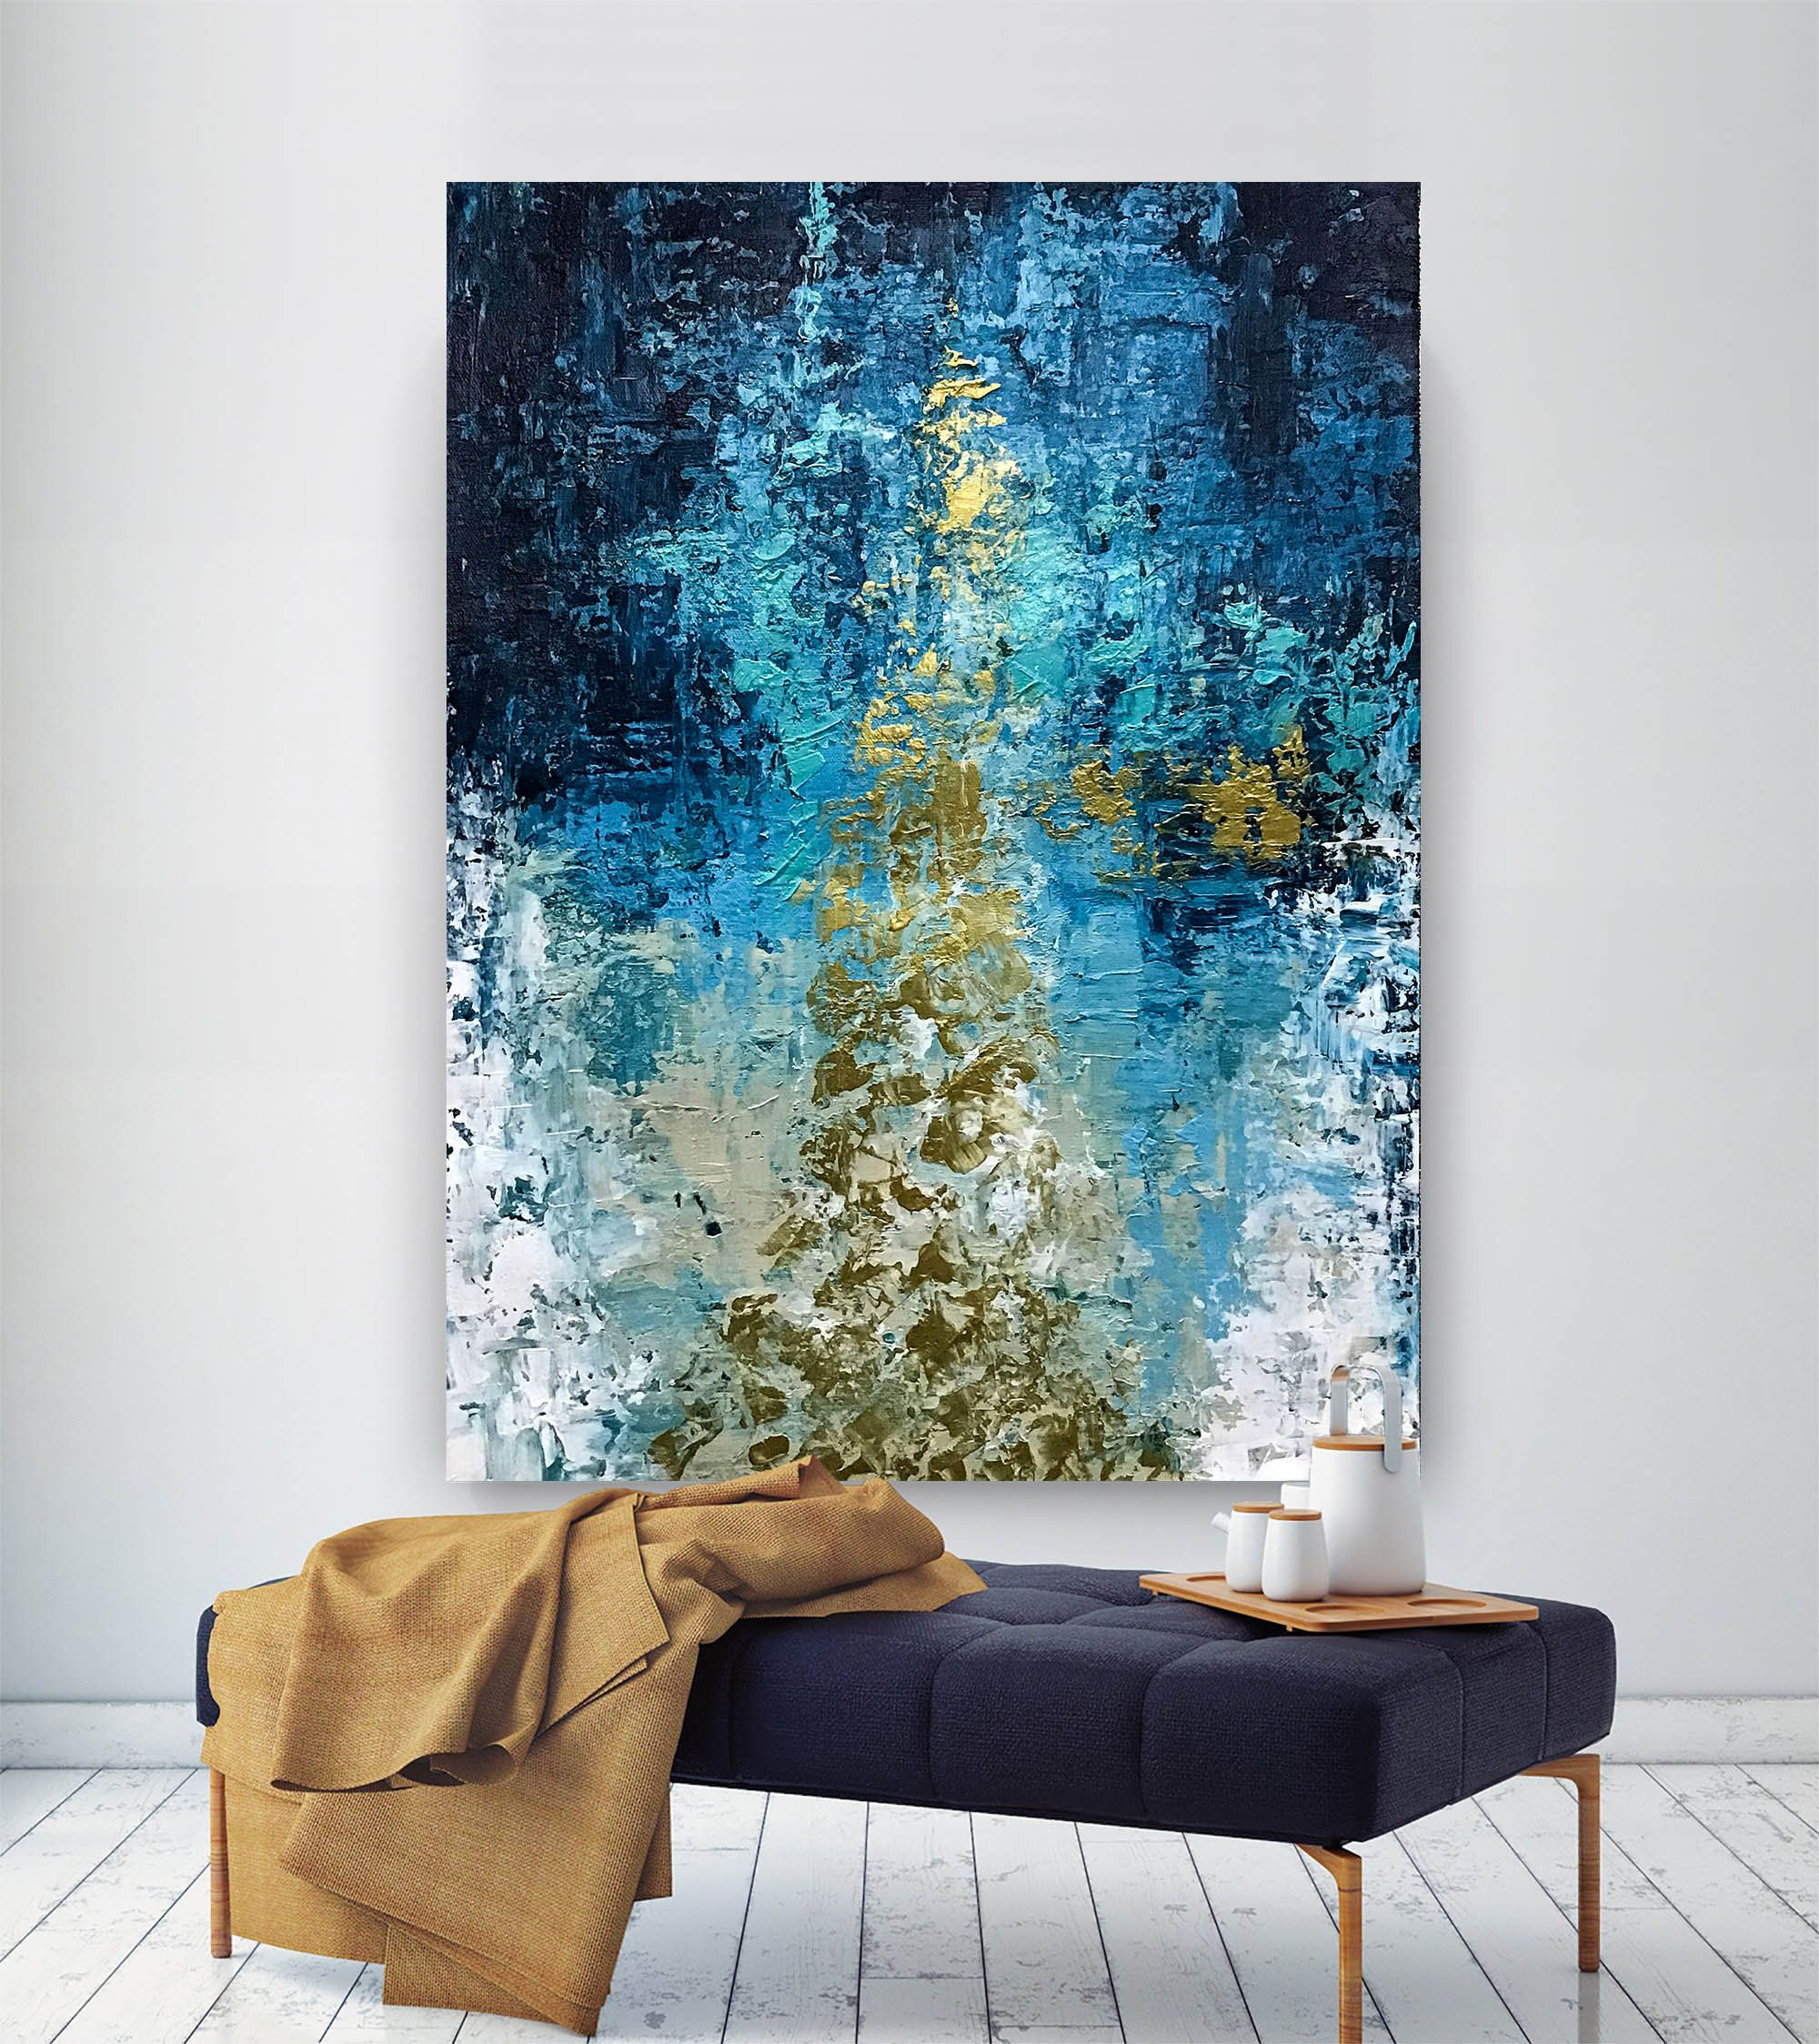 Large Abstract Painting Modern Abstract Painting Oil Hand Painting Living Room Wall Art M In 2020 Wall Art Living Room Living Room Wall Color Large Artwork Living Room #painting #art #for #living #room